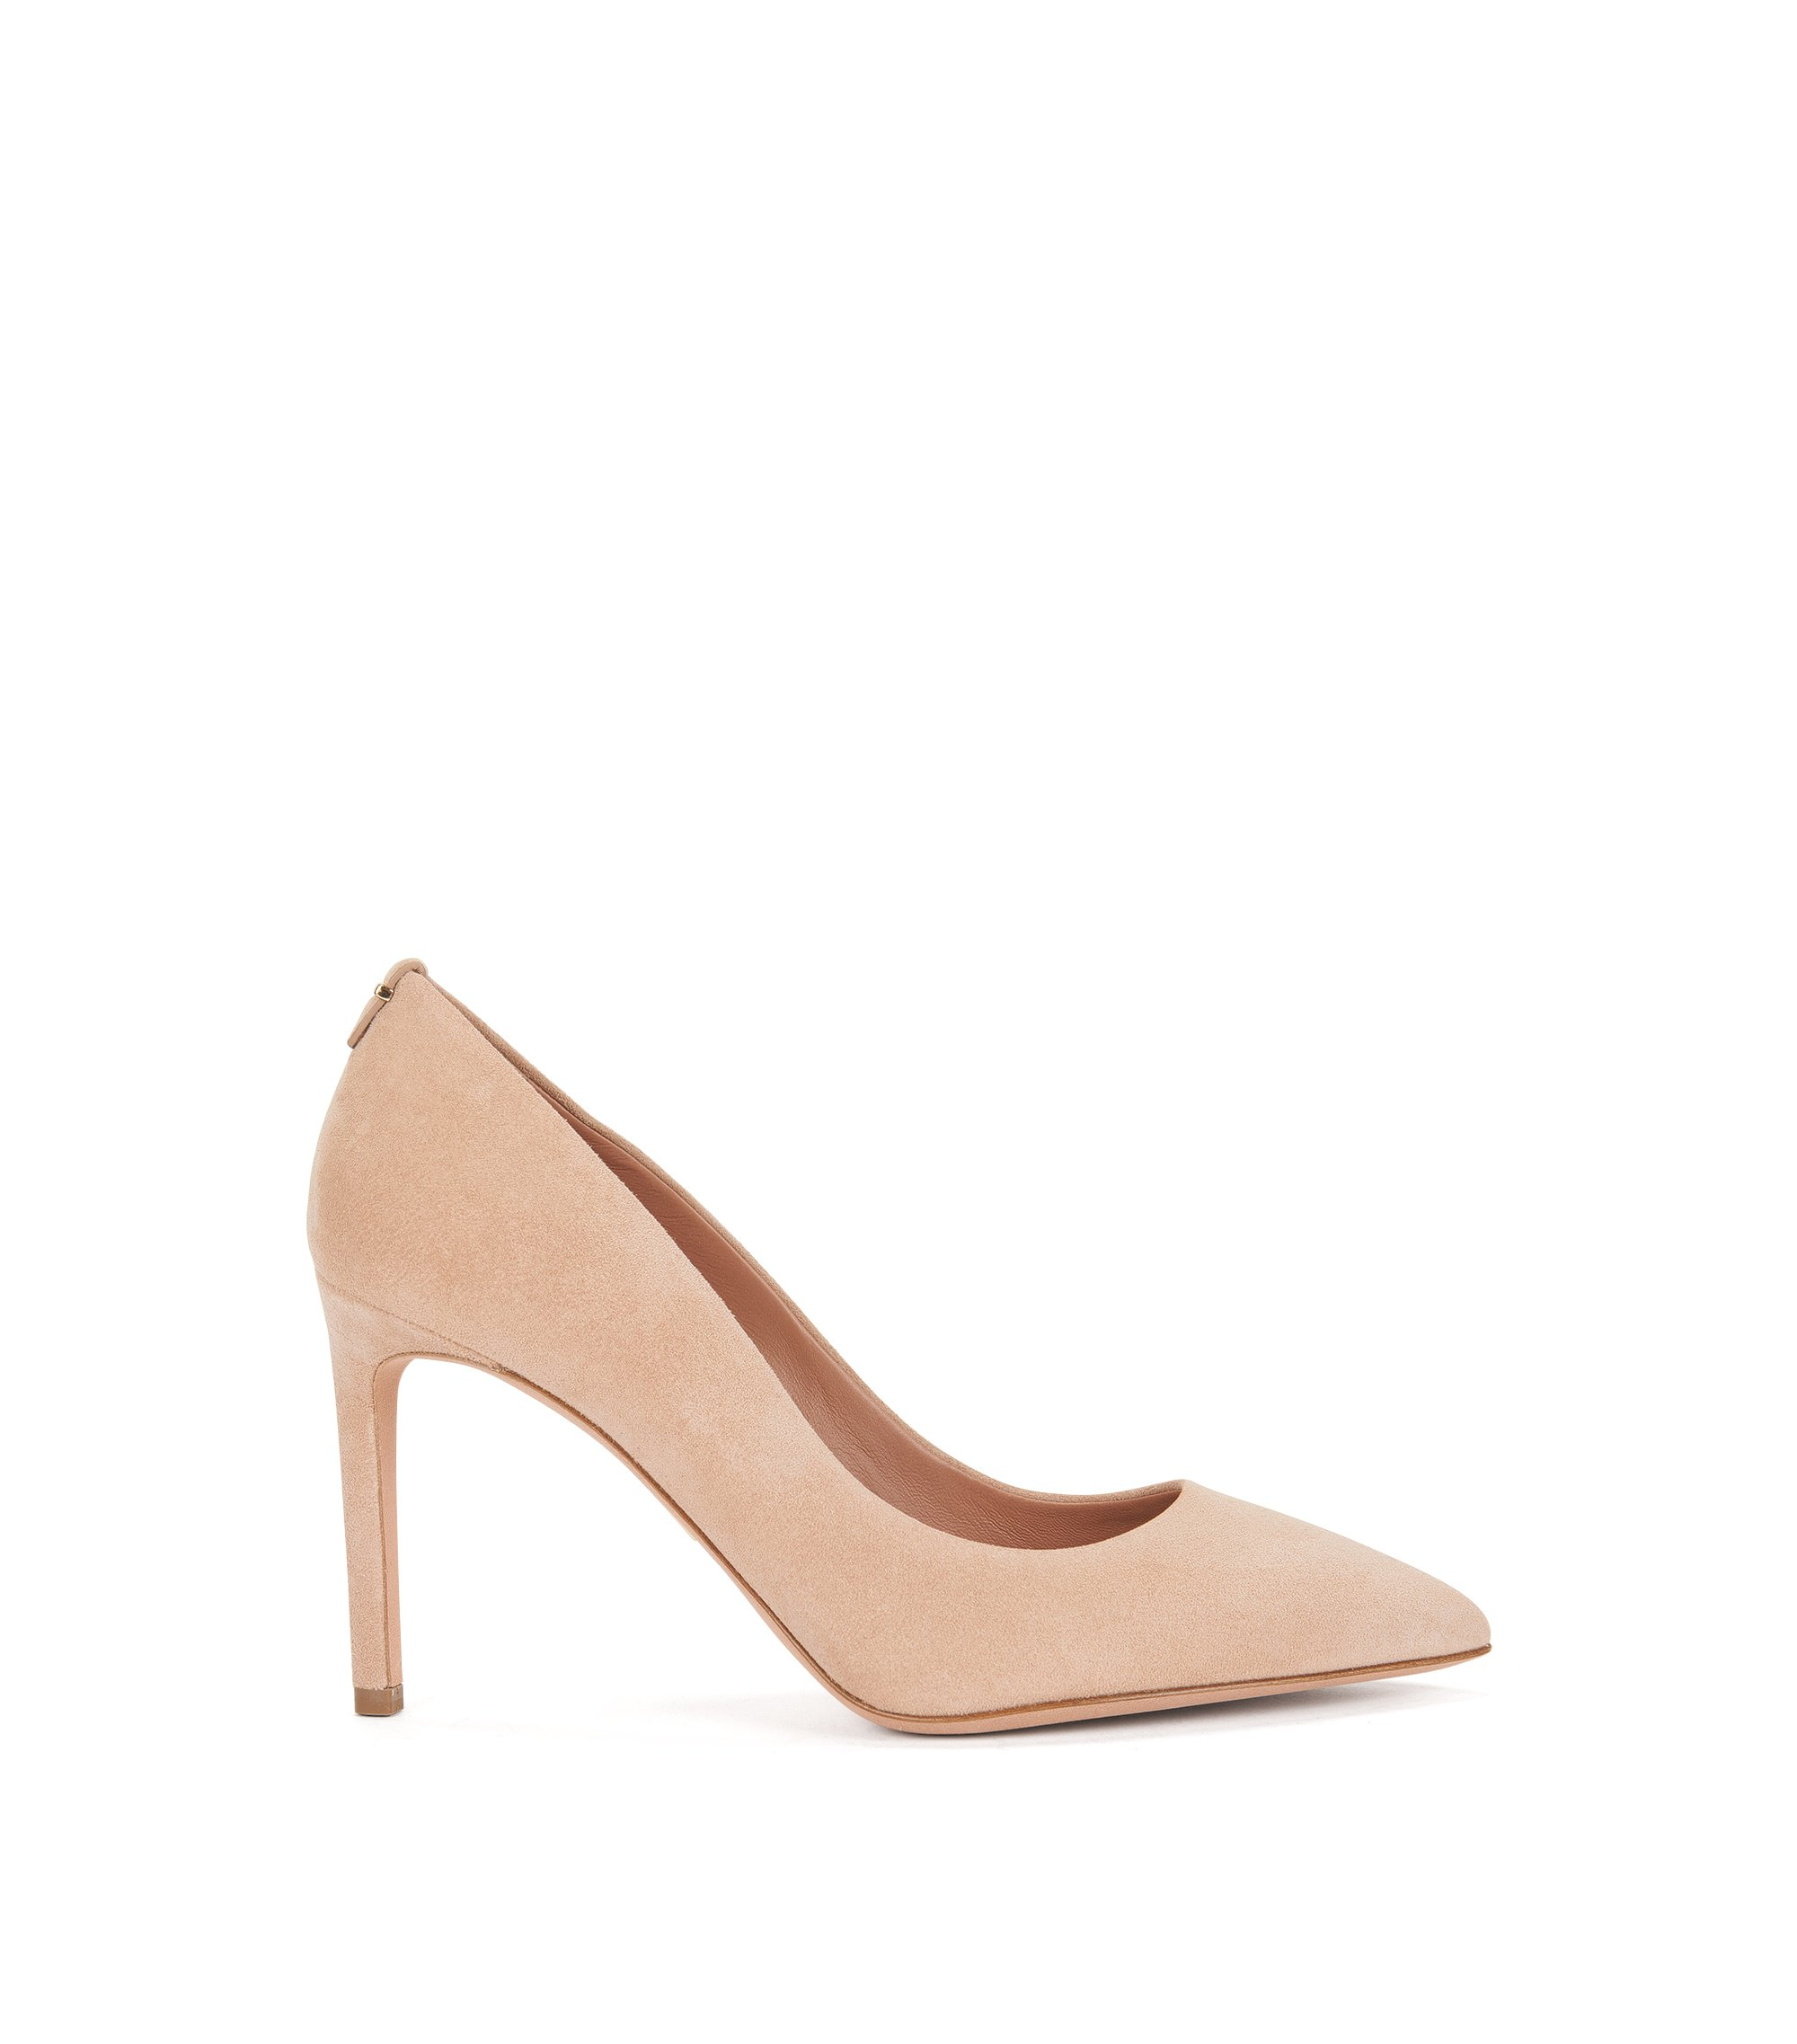 BOSS Luxury Staple pumps in Italian suede, Light Beige